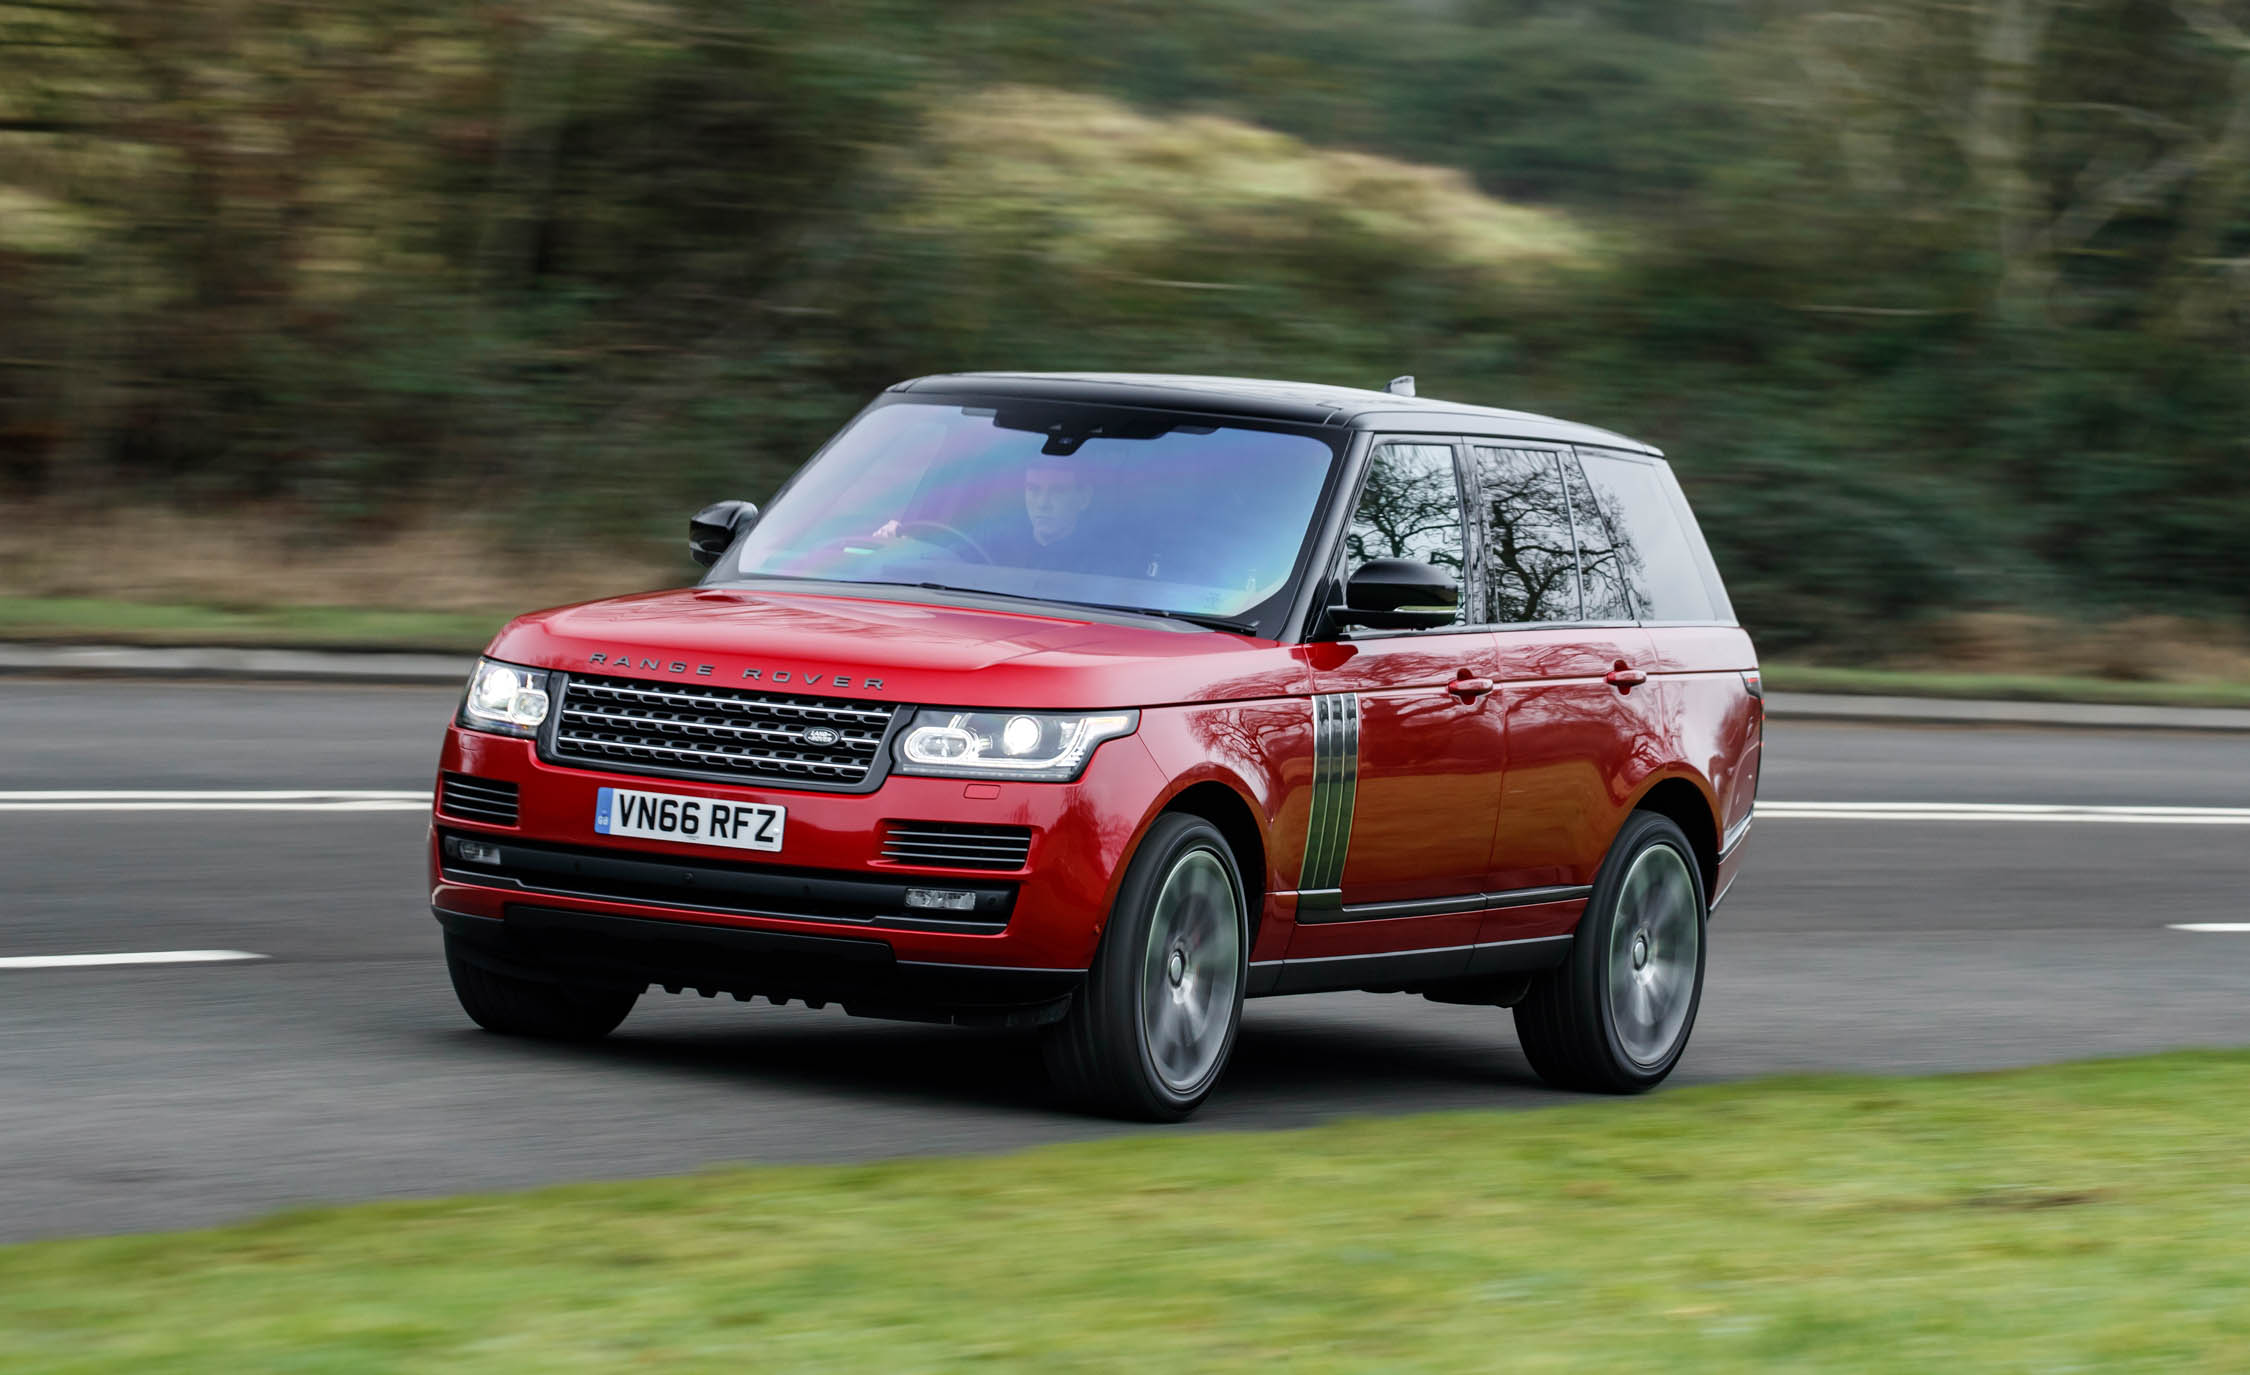 2017 Land Rover Range Rover SVAutobiography Dynamic Test Drive Performance (Photo 18 of 24)